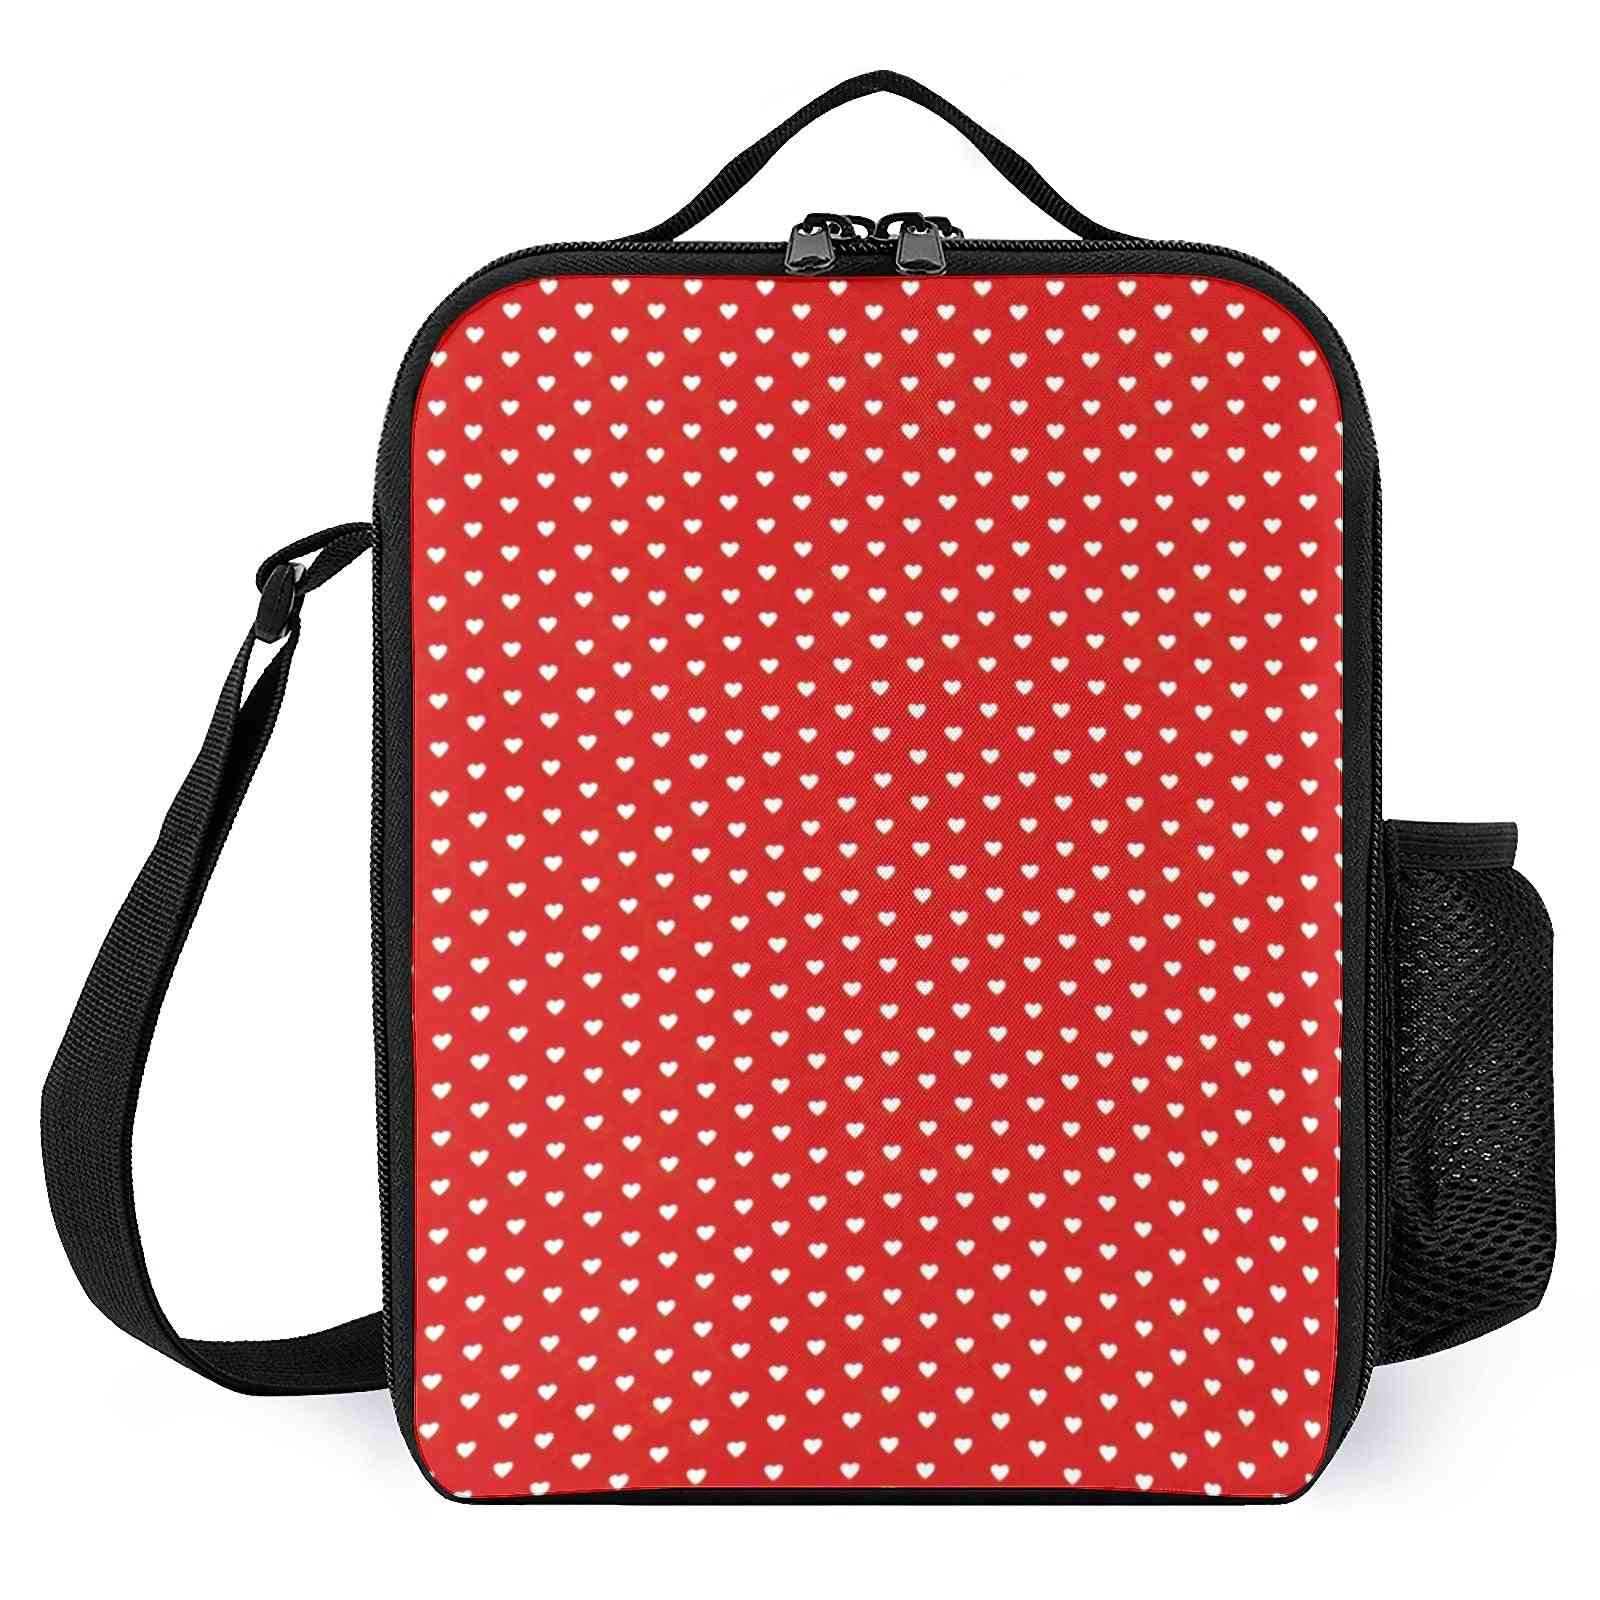 Small White Heart Pattern Printed Lunch Bags